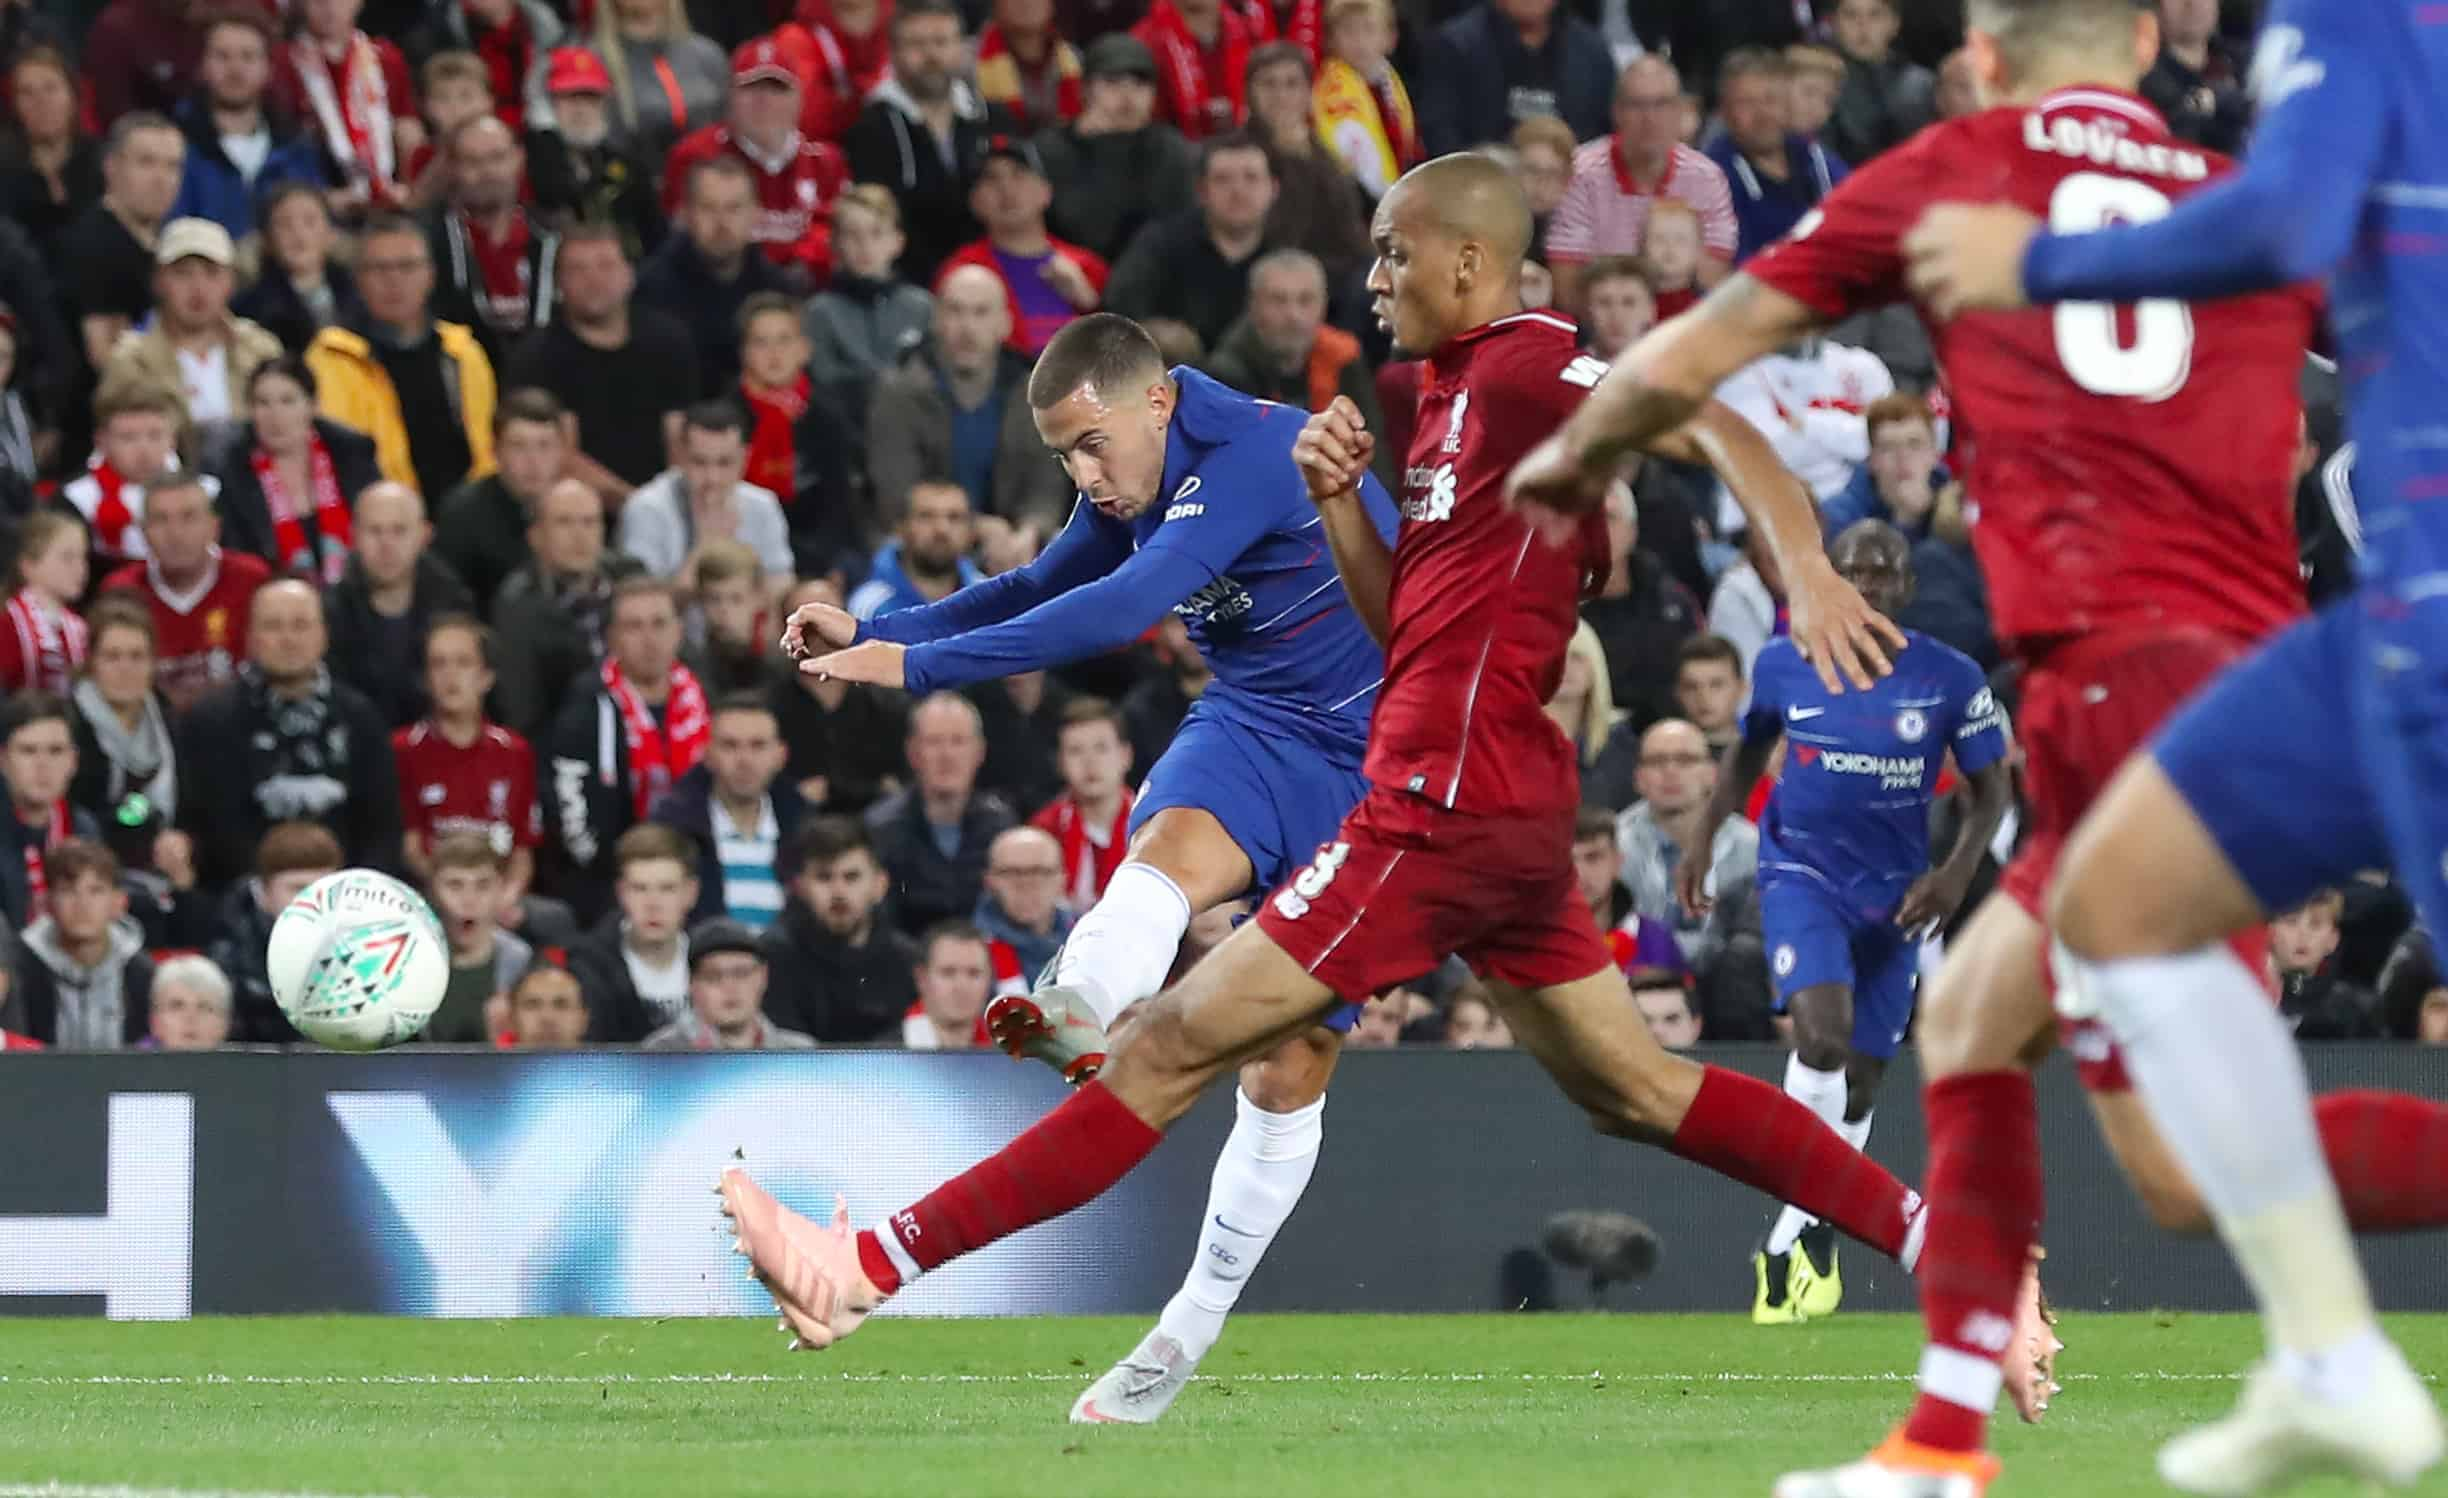 Chelsea's Eden Hazard scores his side's second goal of the game during the Carabao Cup, Third Round match at Anfield, Liverpool. (Martin Rickett/PA Wire/PA Images)